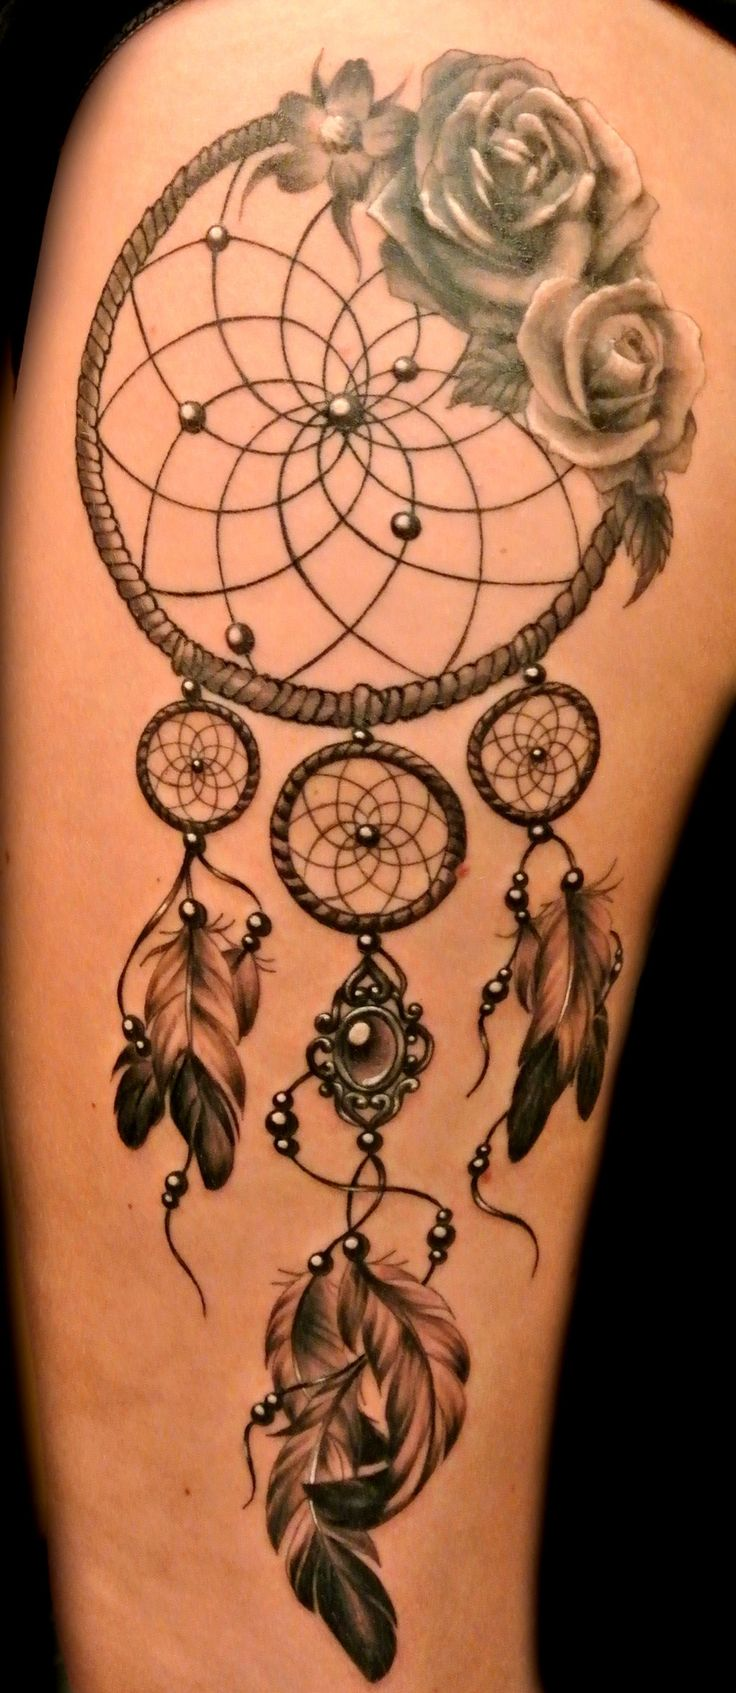 native american dream catcher tattoo - Google Search